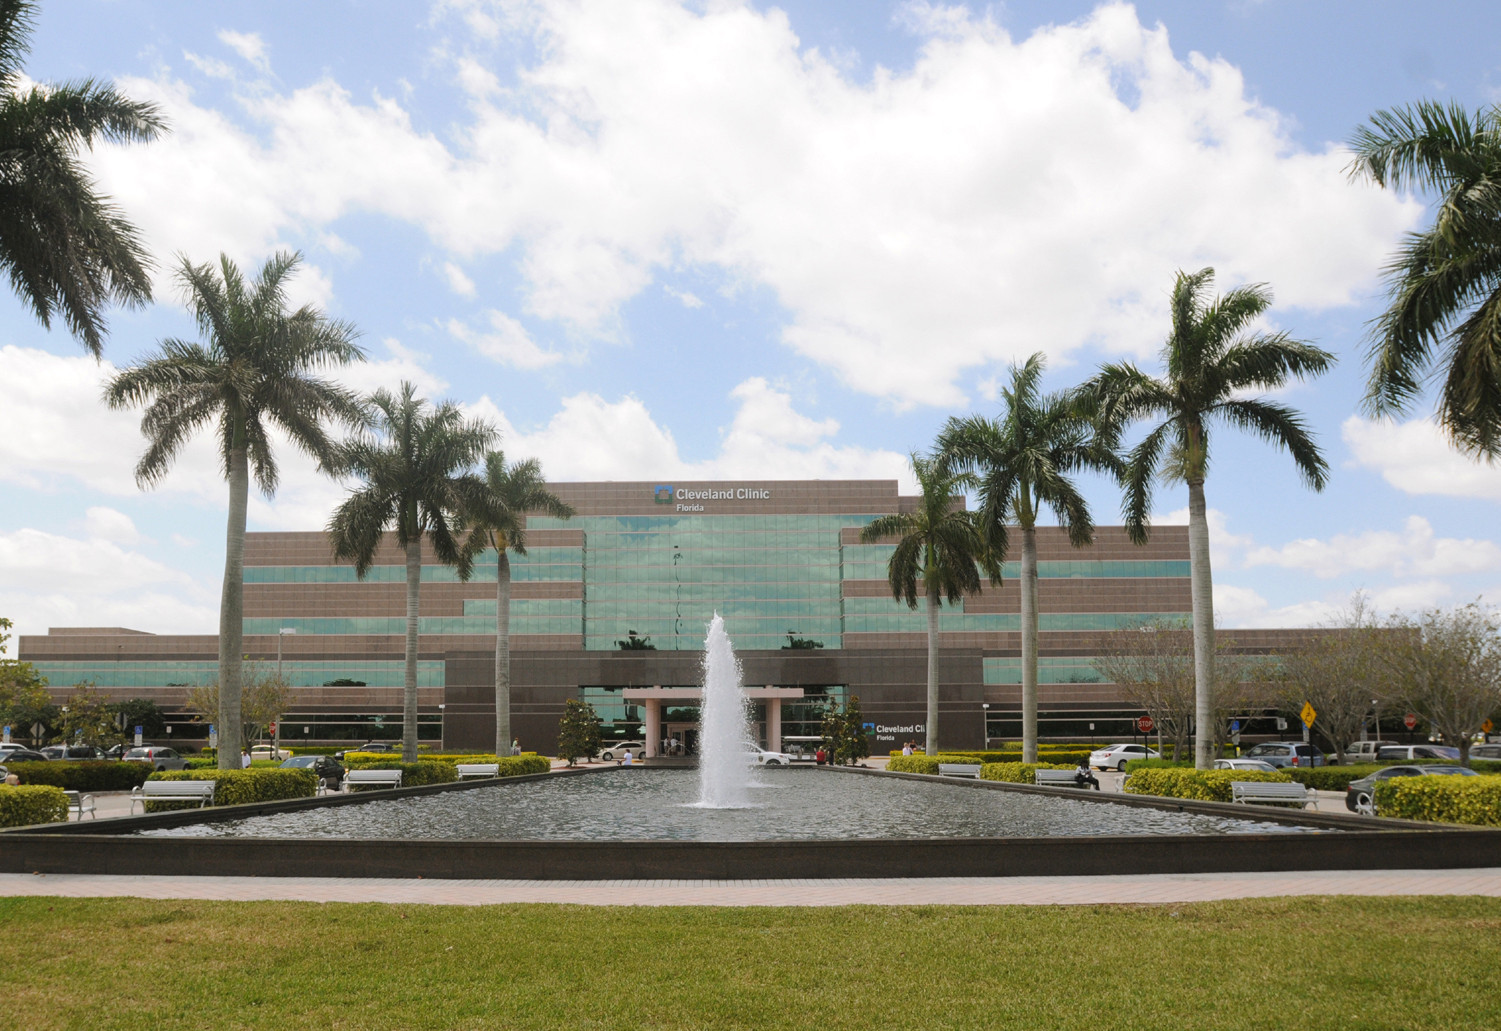 South Florida Hospitals Making The Grade On National Rankings   Sun Sentinel